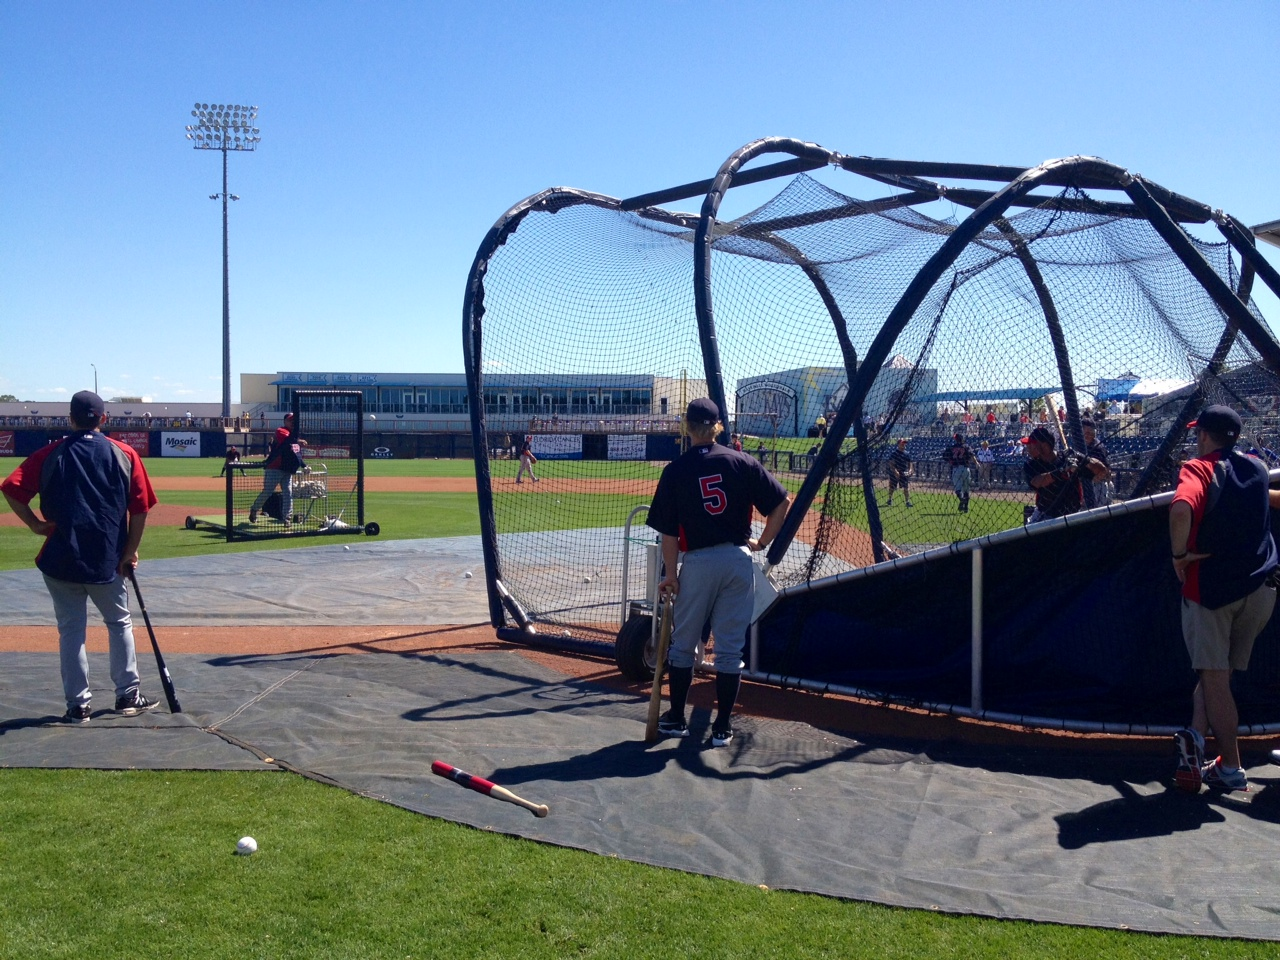 Twins taking BP on the field